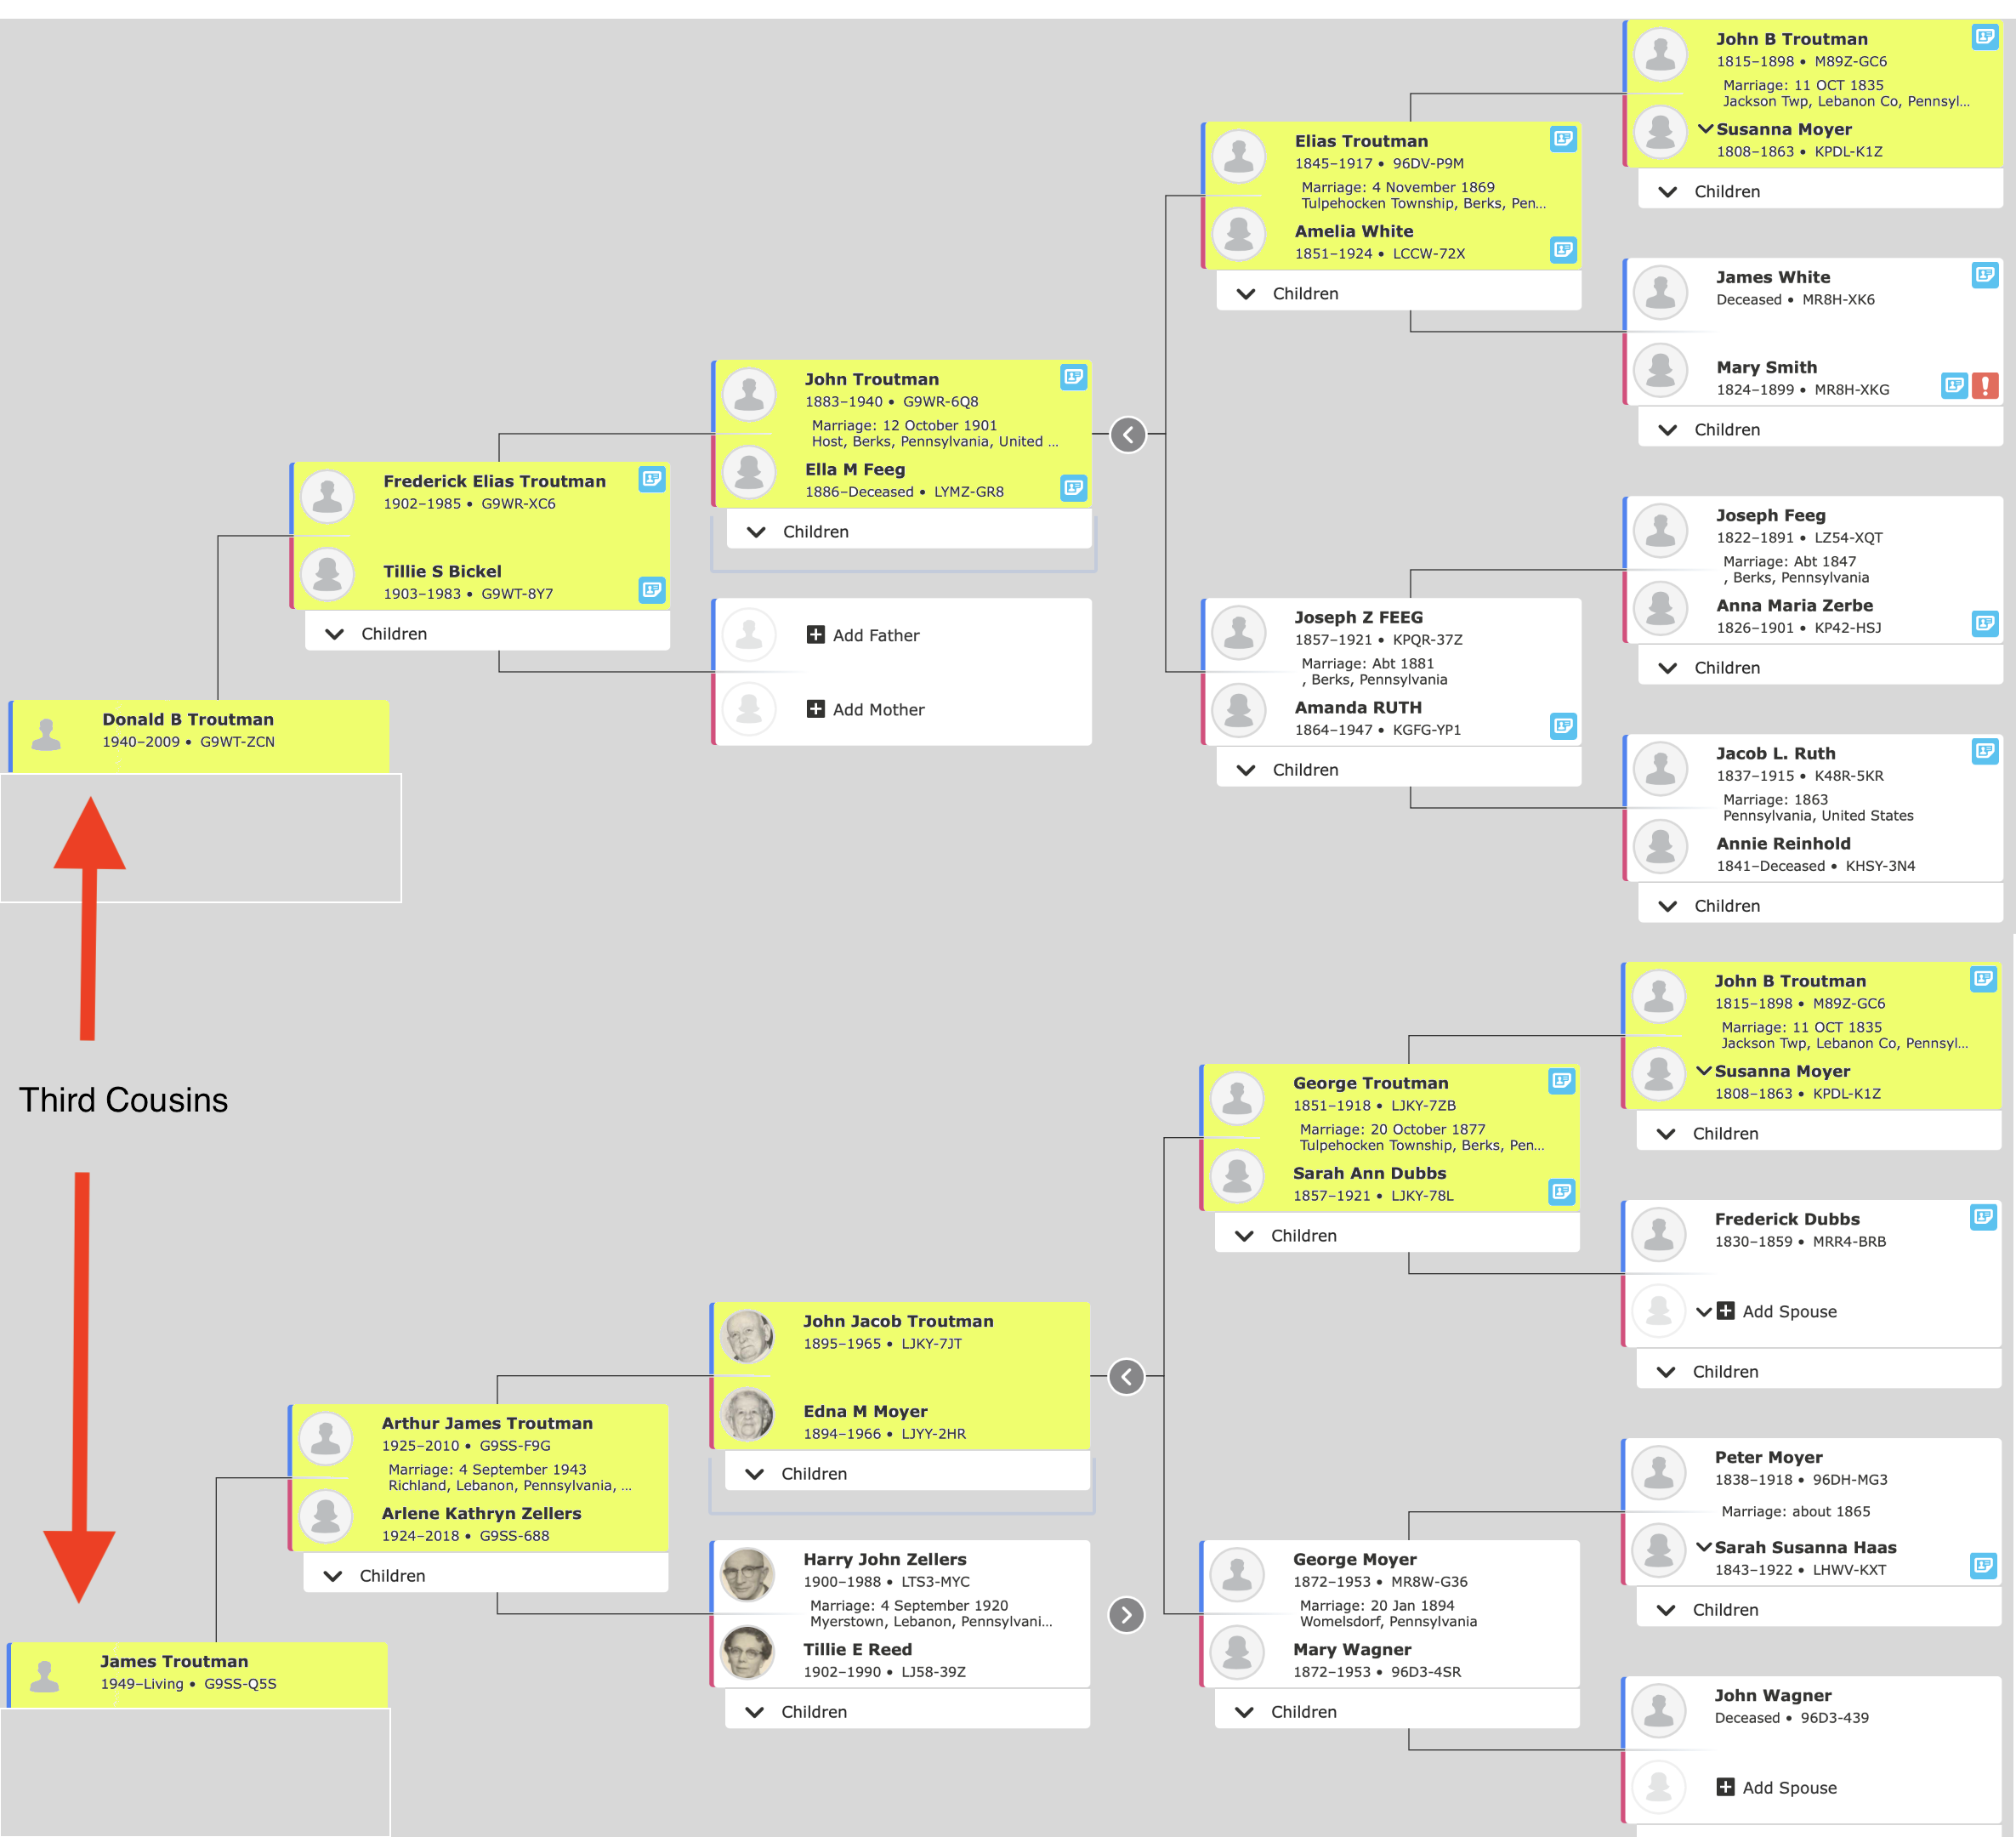 The family tree showing our connection. Notice in the rightmost column that John B Troutman and Susanna Moyer (highlighted) are shown twice. Their offspring, Elias Troutman and George Troutman are brothers. Their respective offspring, John Troutman and John Jacob Troutman, are cousins. They in turn beget Frederick Elias Troutman and Arthur James Troutman, who are second cousins. And finally, their sons are Donald and me, who are third cousins. Click the image to enlarge.